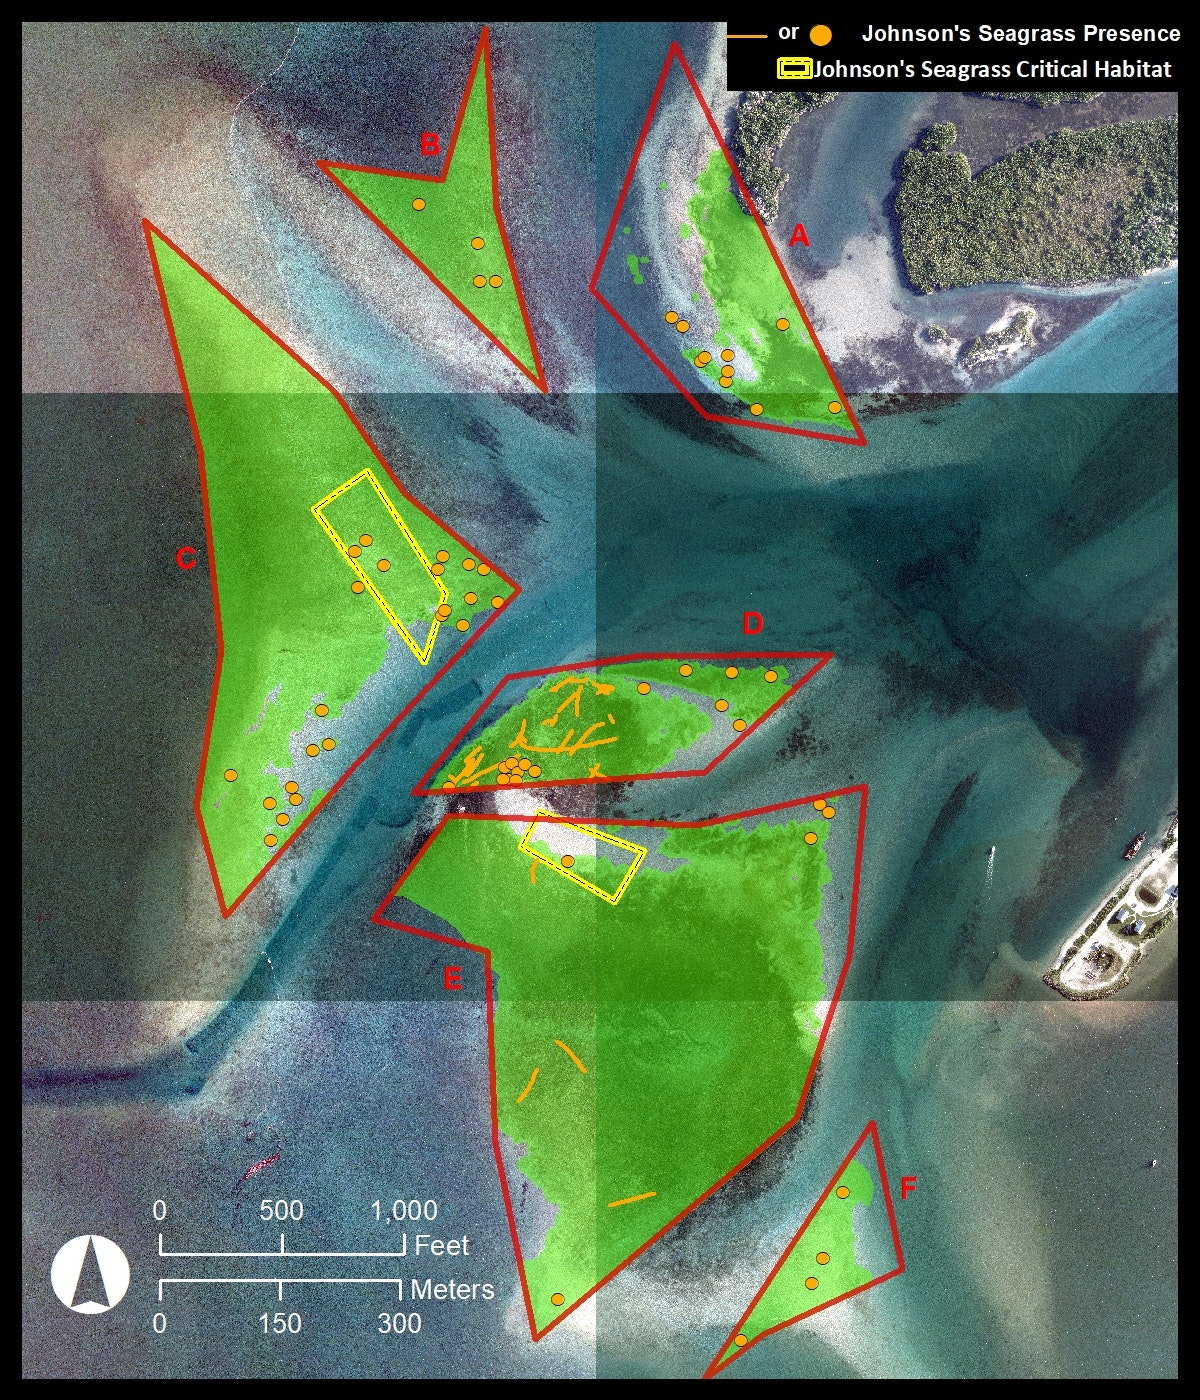 aerial map looking straight down of Sebastian Inlet flood shoal with 6 zone boundaries and indicators where Johnson's seagrass found